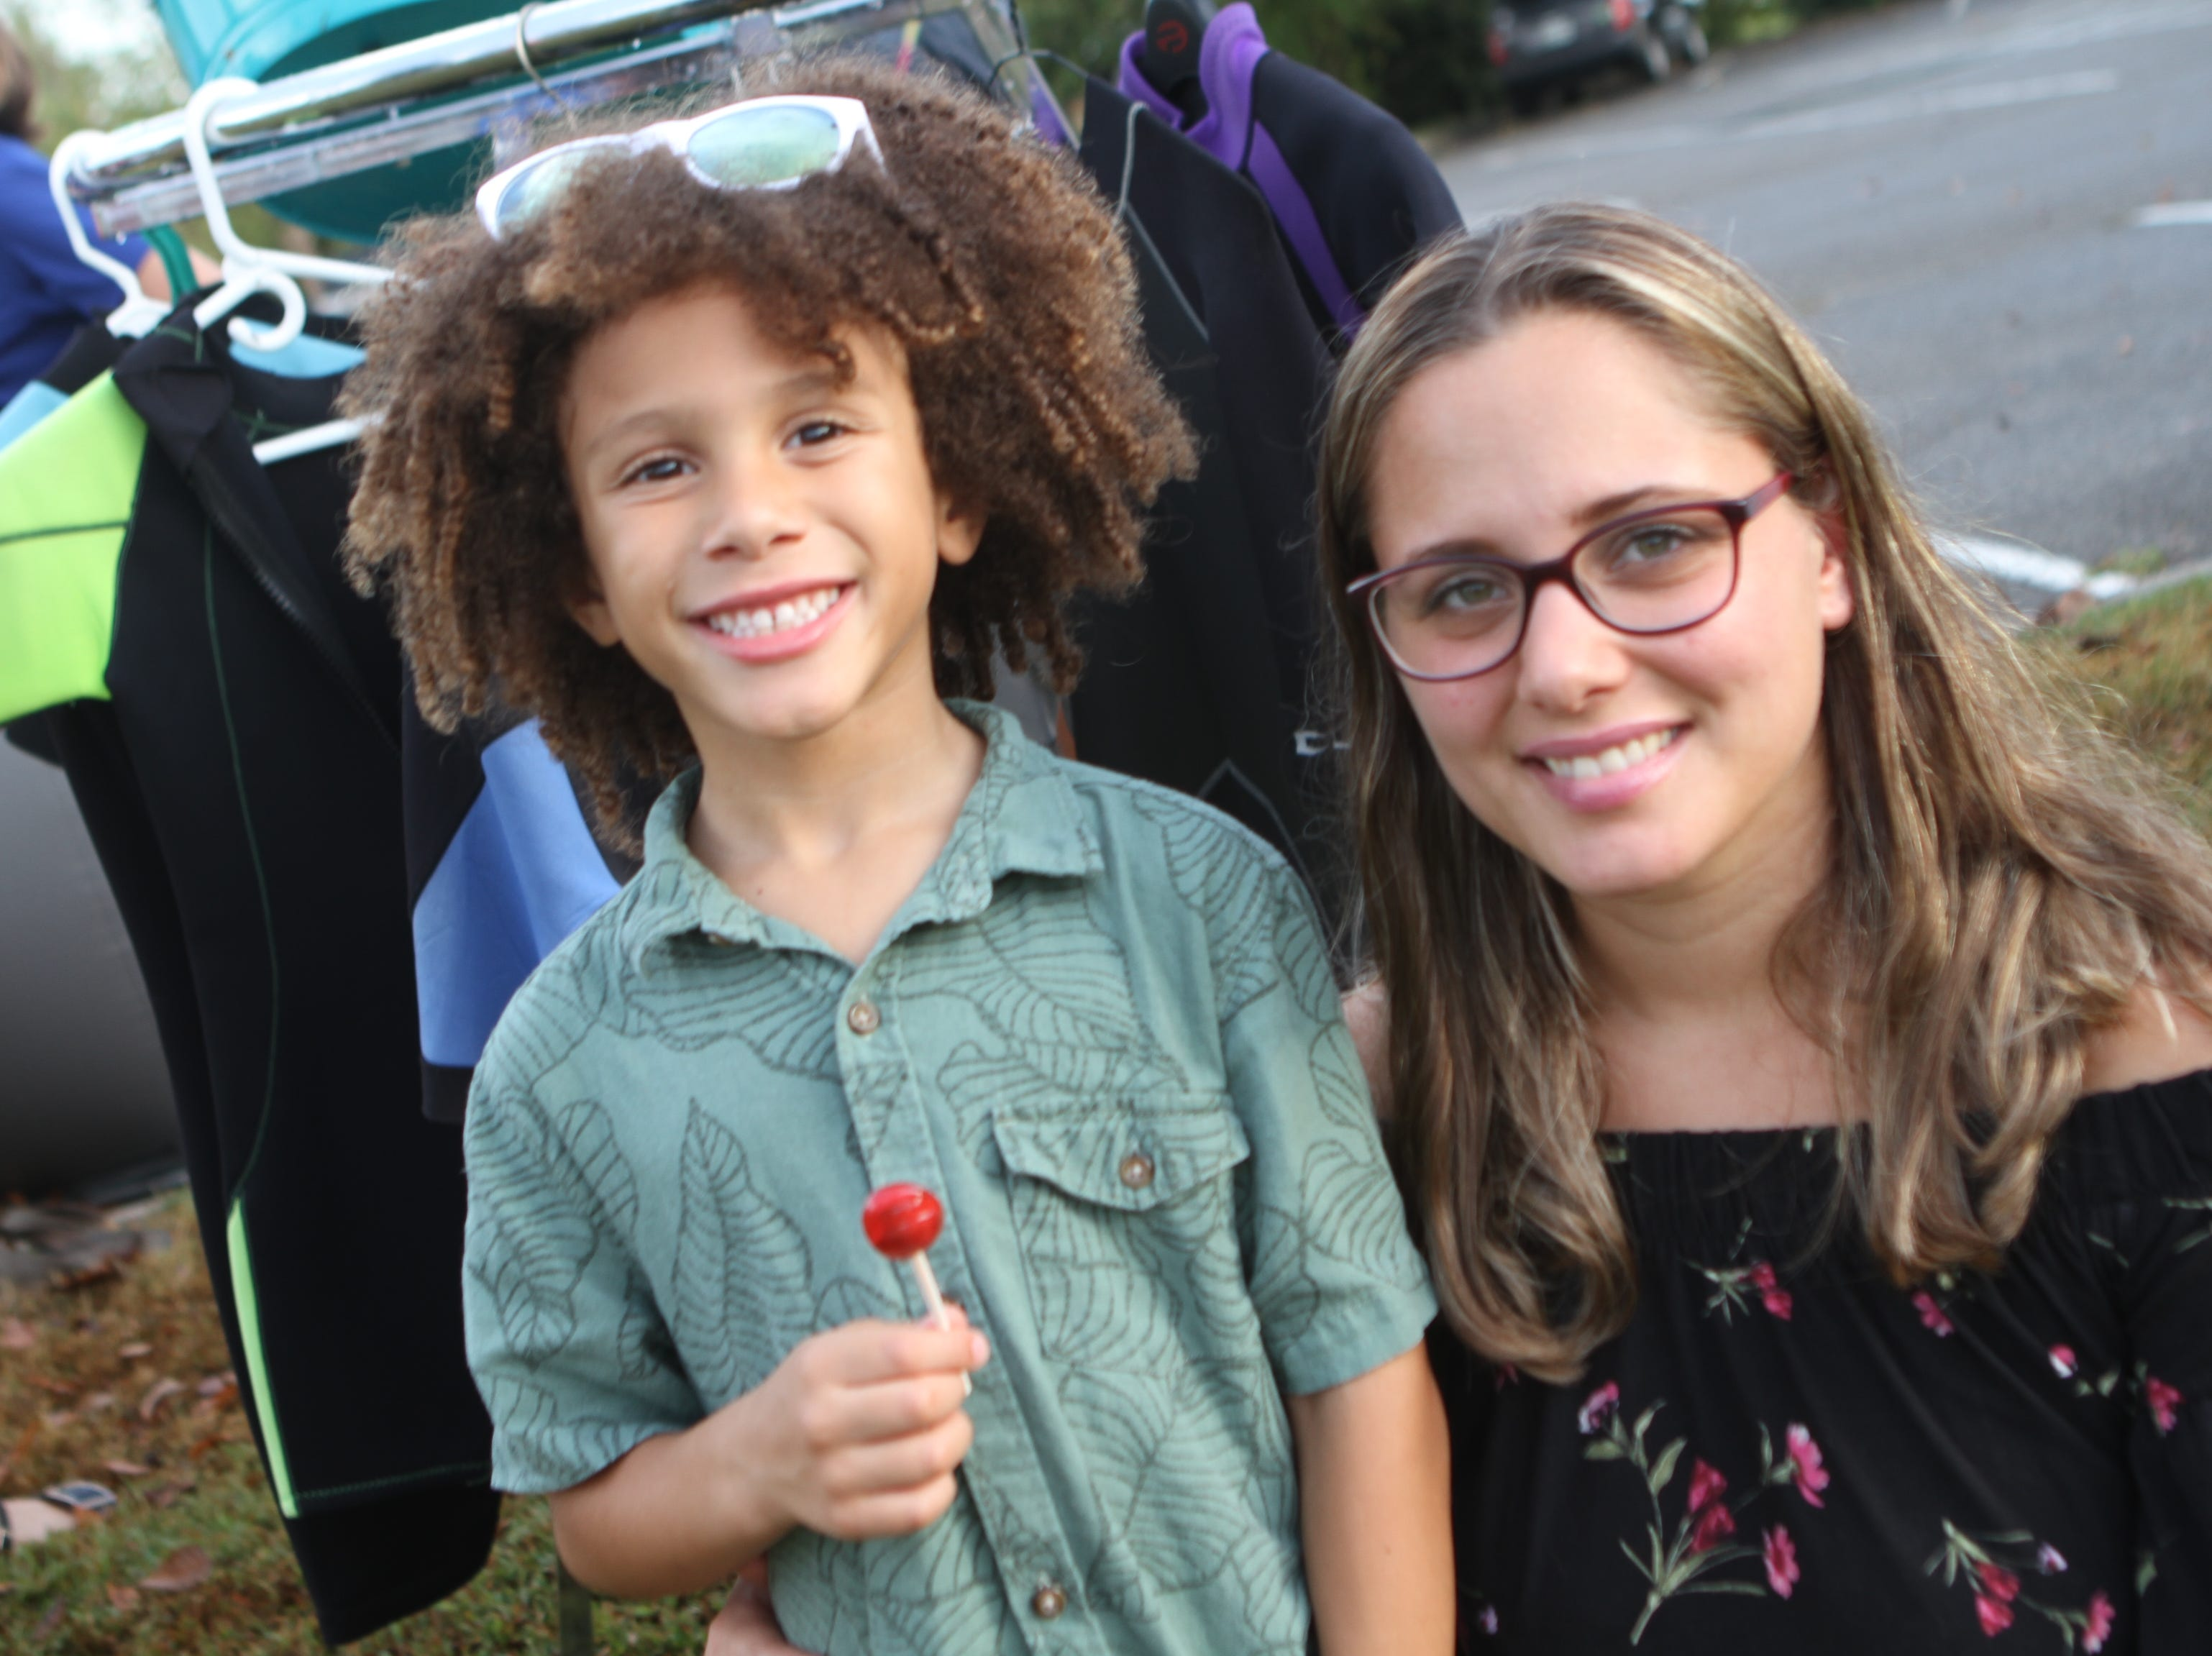 Noah and Giovanna Brown at Clarksville Riverfest on Friday night, Sept. 7, 2018.